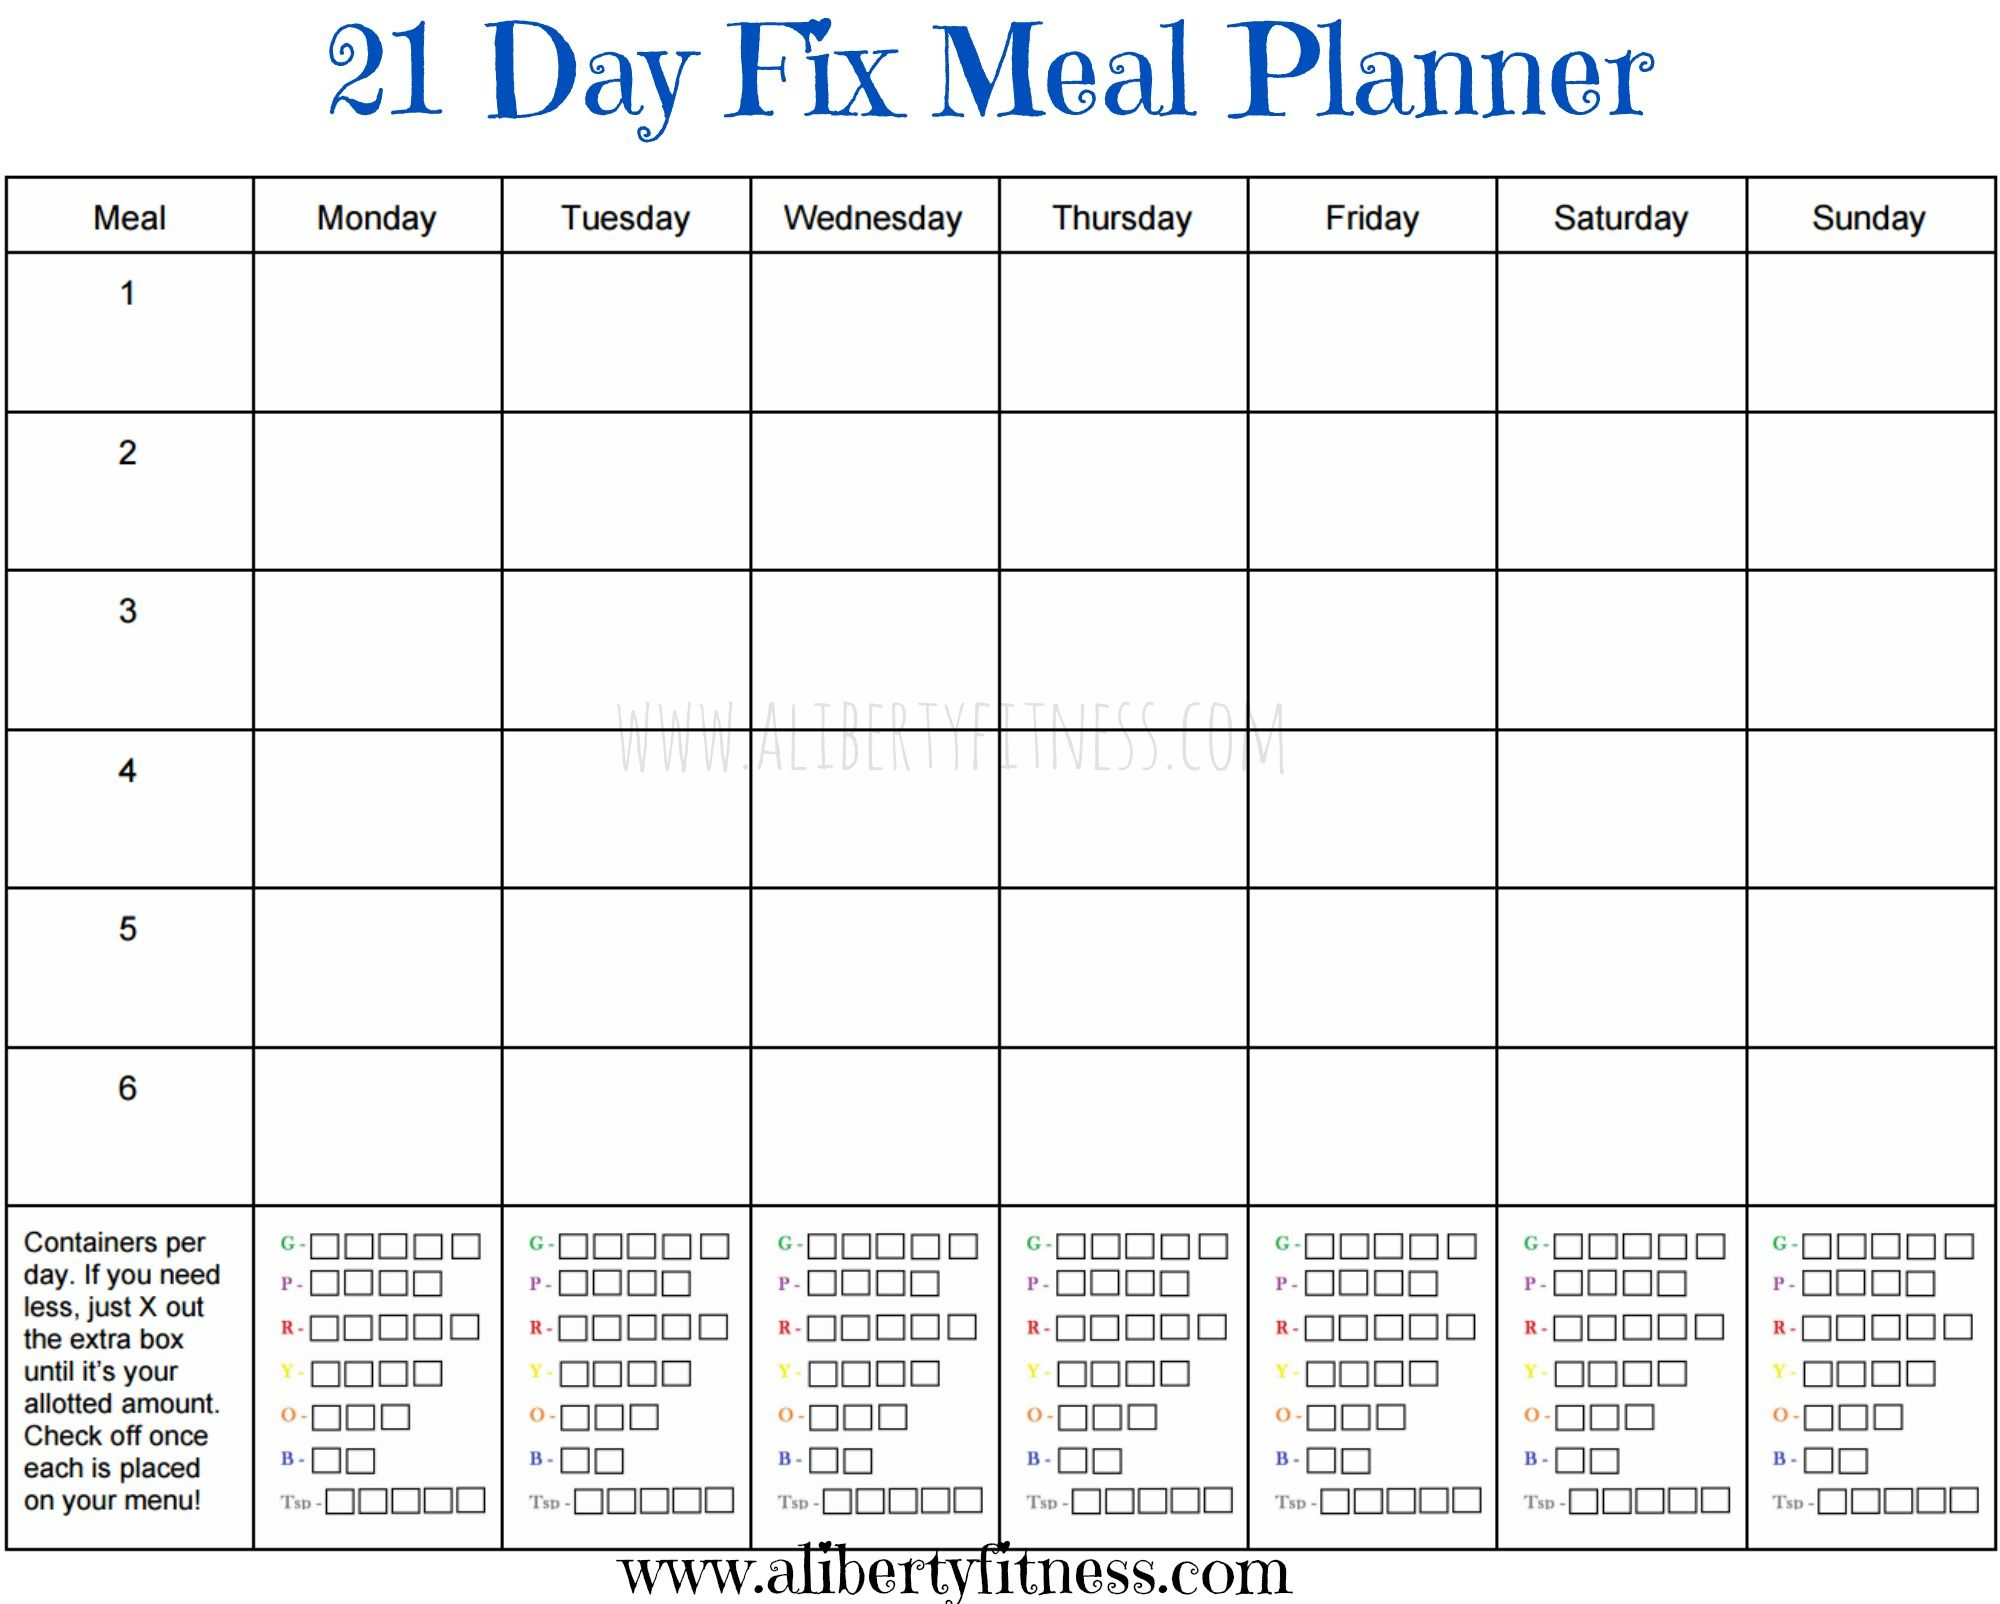 photo about 21 Day Fix Meal Planner Printable named Pin upon Balanced Food items